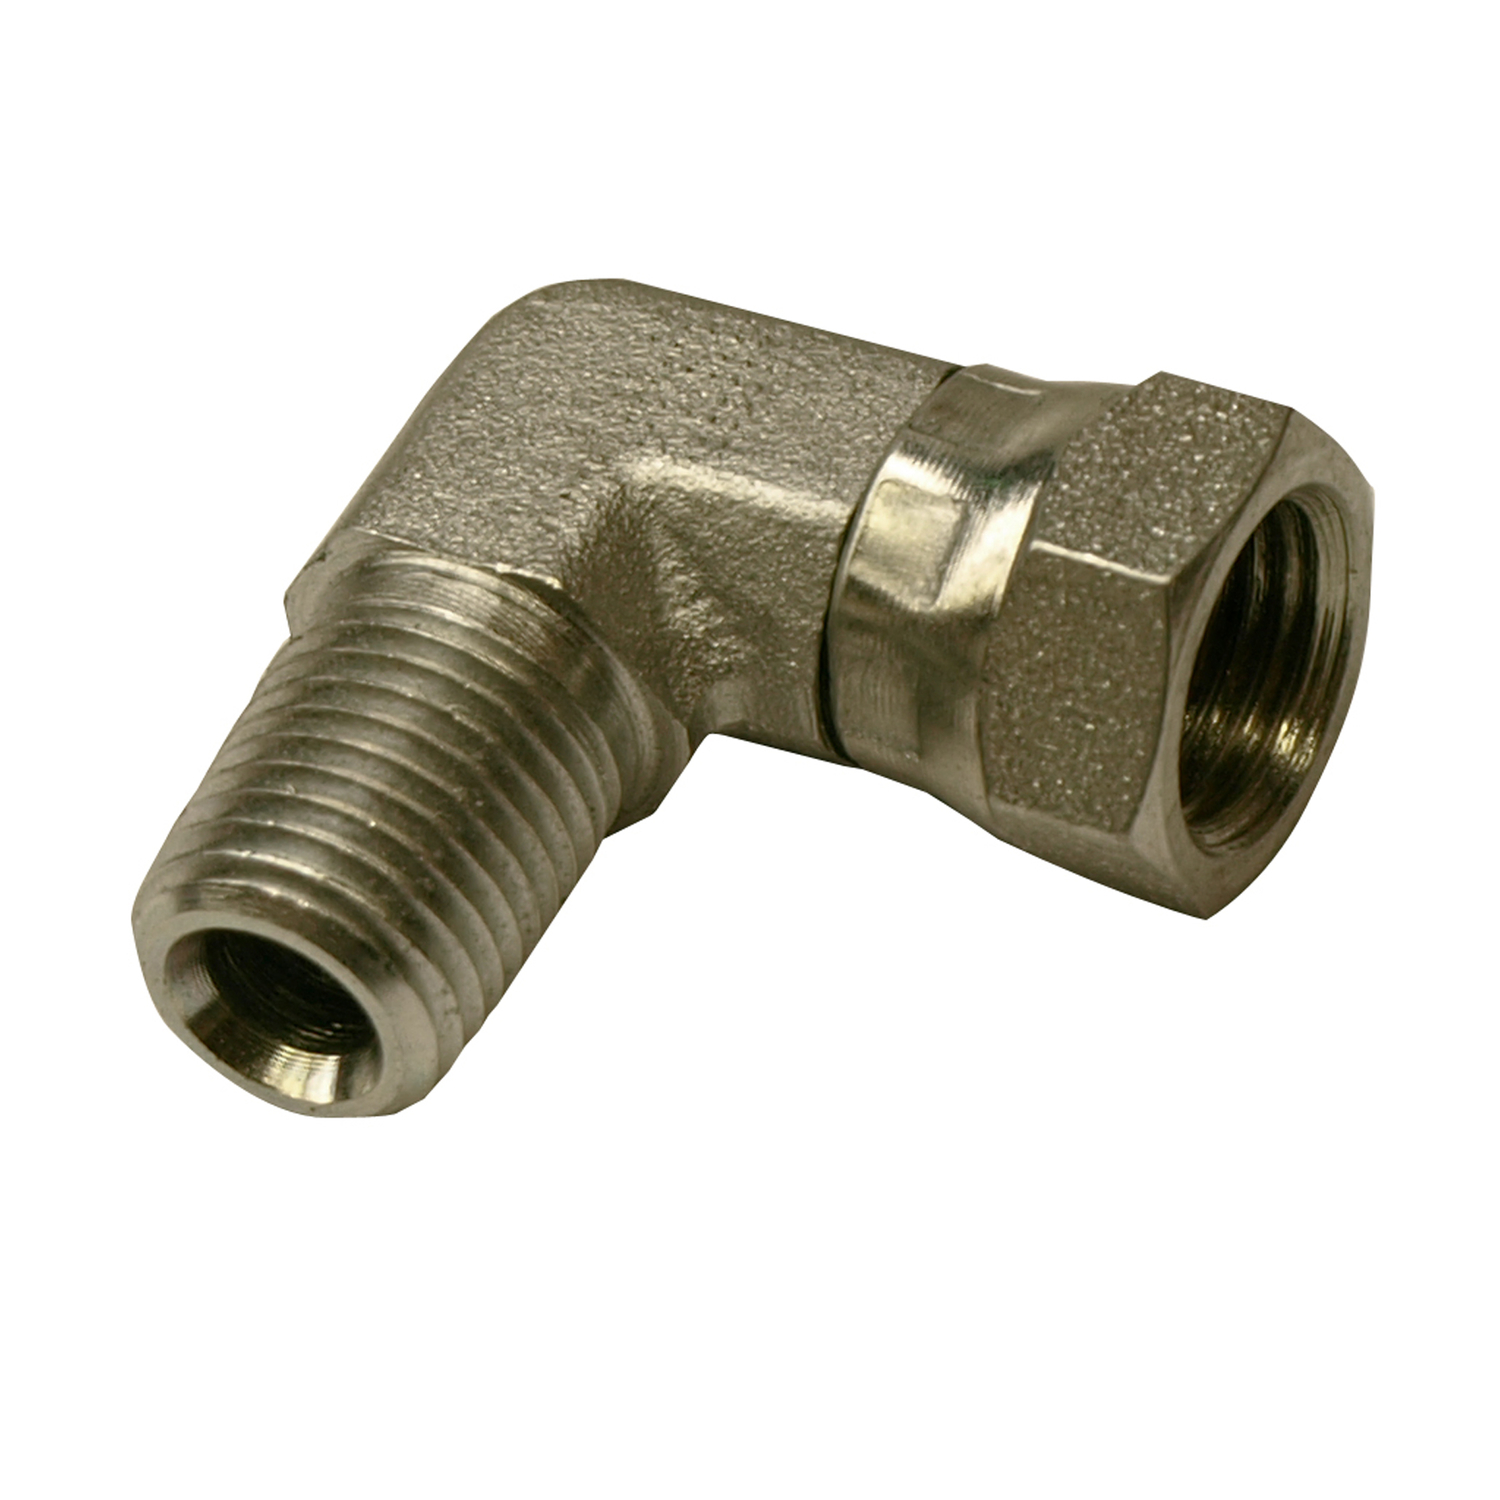 Universal  Steel  Hydraulic Adapter  1/4 in. Dia. x 1/4 in. Dia. 1